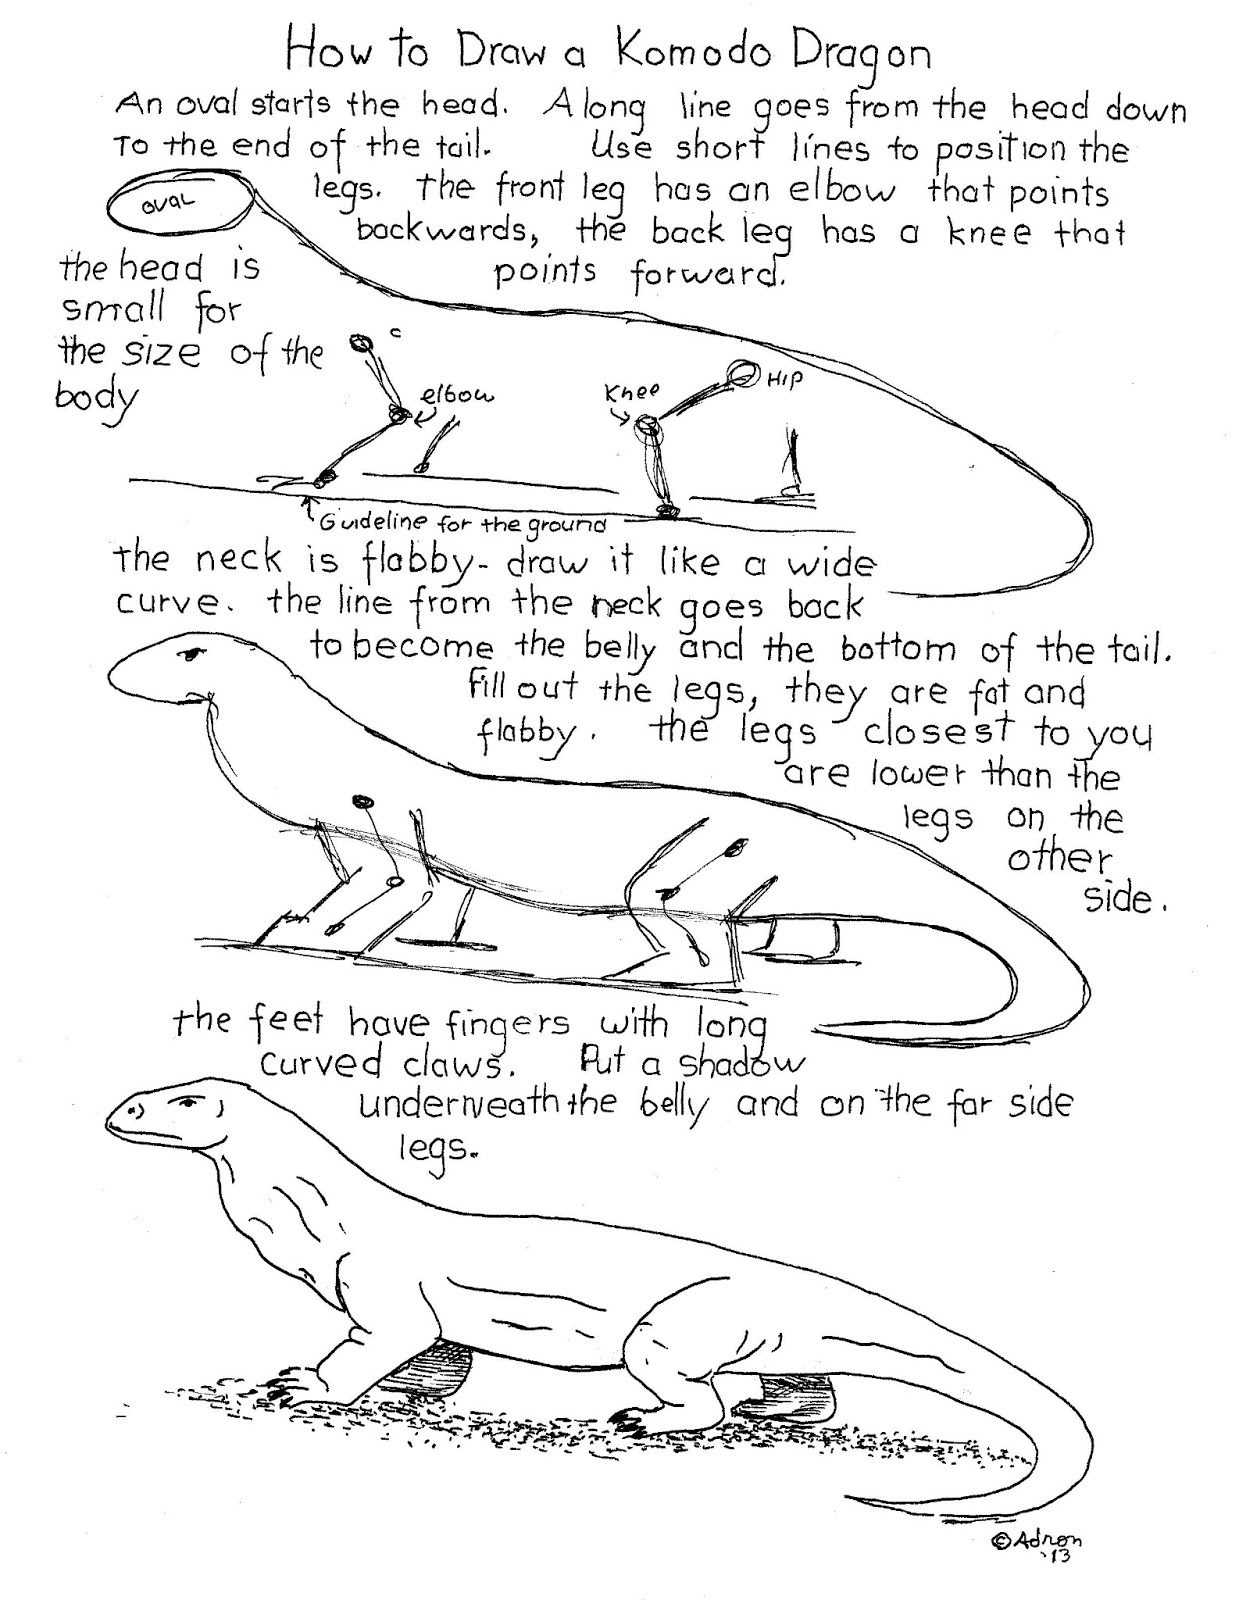 how to draw worksheets for the young artist how to draw a komodo dragon worksheet. Black Bedroom Furniture Sets. Home Design Ideas